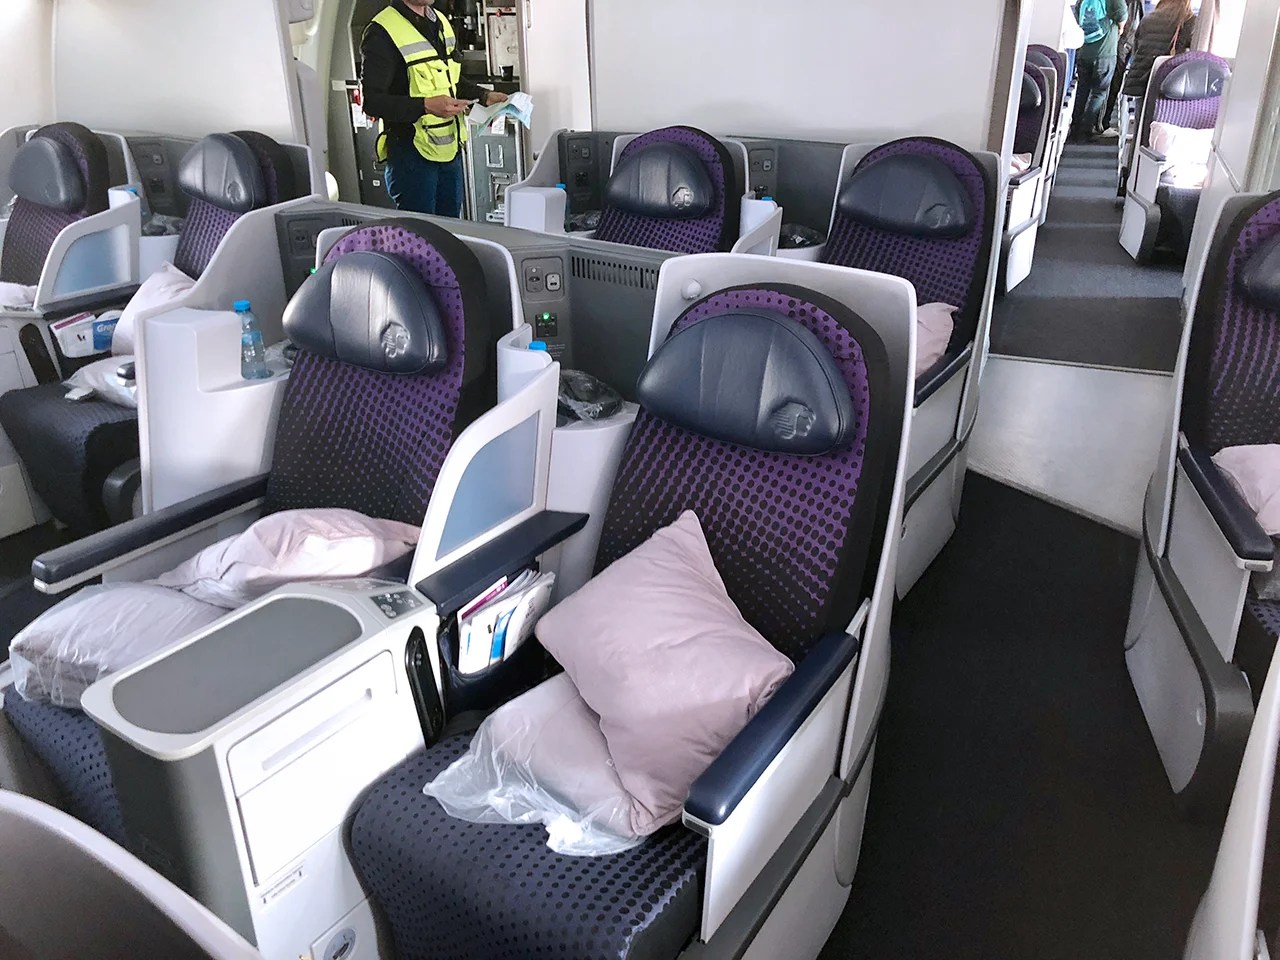 Review Aeromexico 787 8 Business Class From Mex To Scl Wiring Issues Also Has Larger 9 Dreamliners In Its Fleet And These Planes Come Equipped With A Much More Desirable Reverse Herringbone 1 2 Configuration